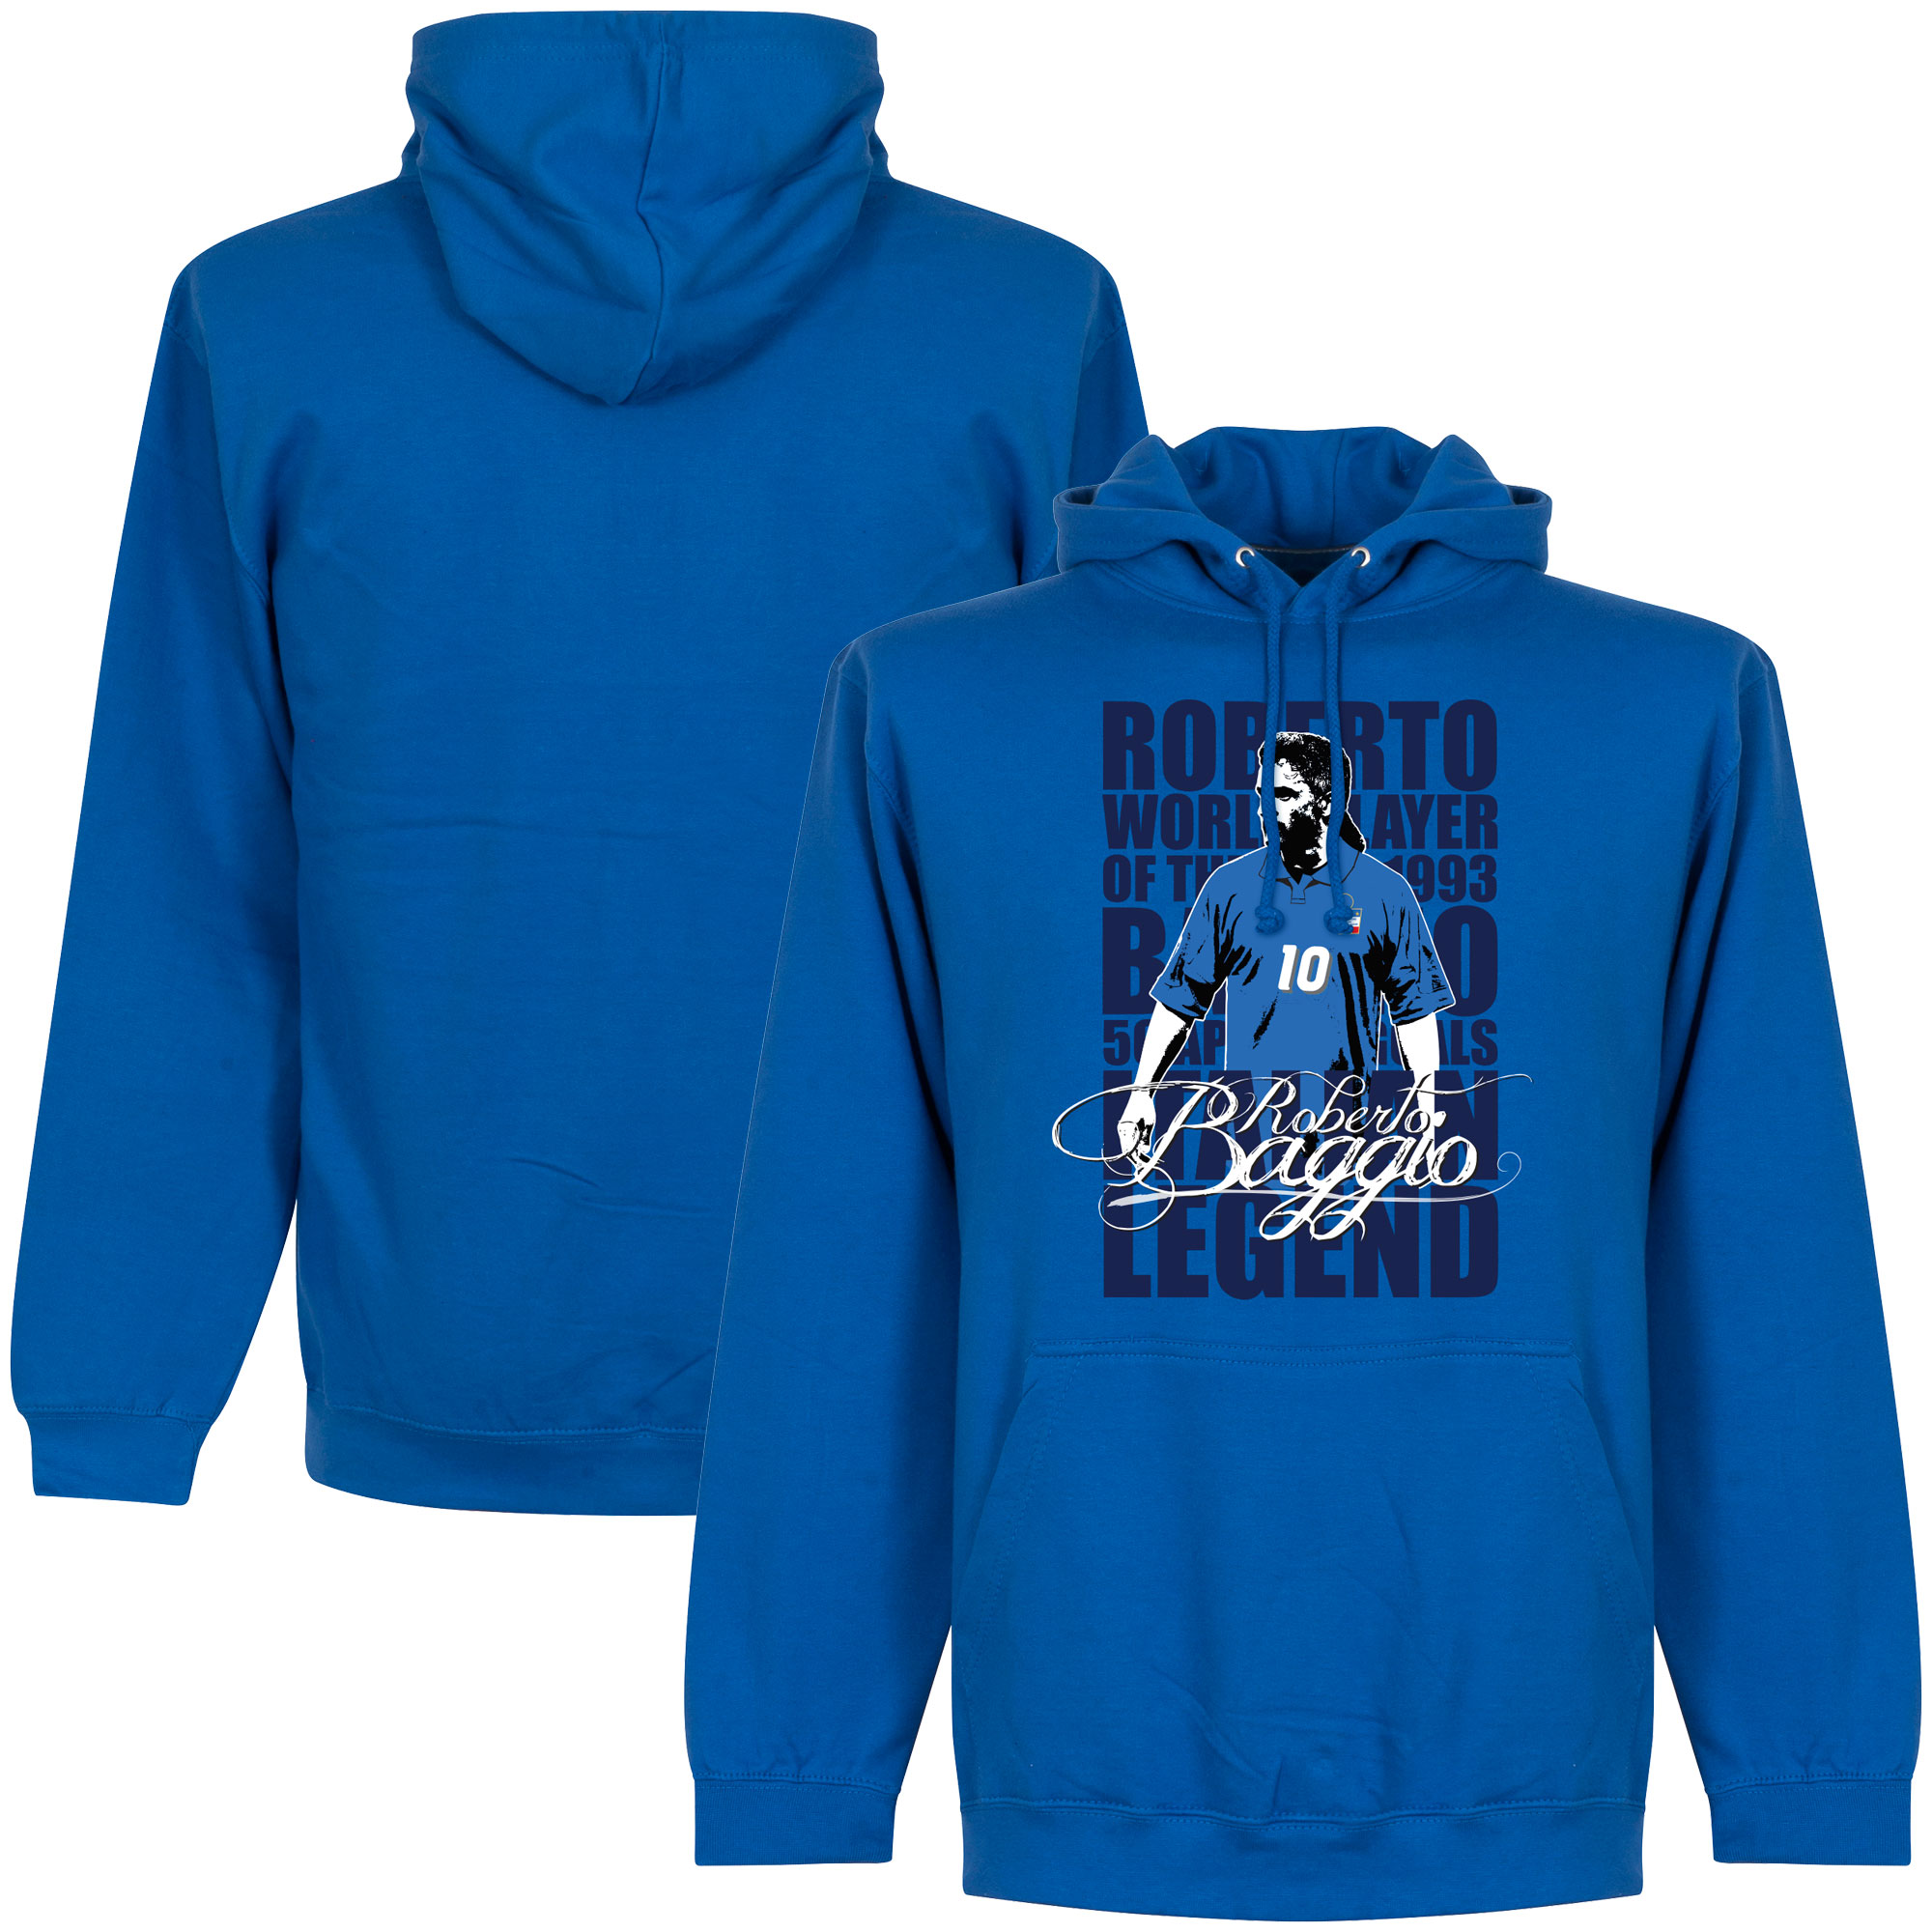 Roberto Baggio Legend Hooded Sweater